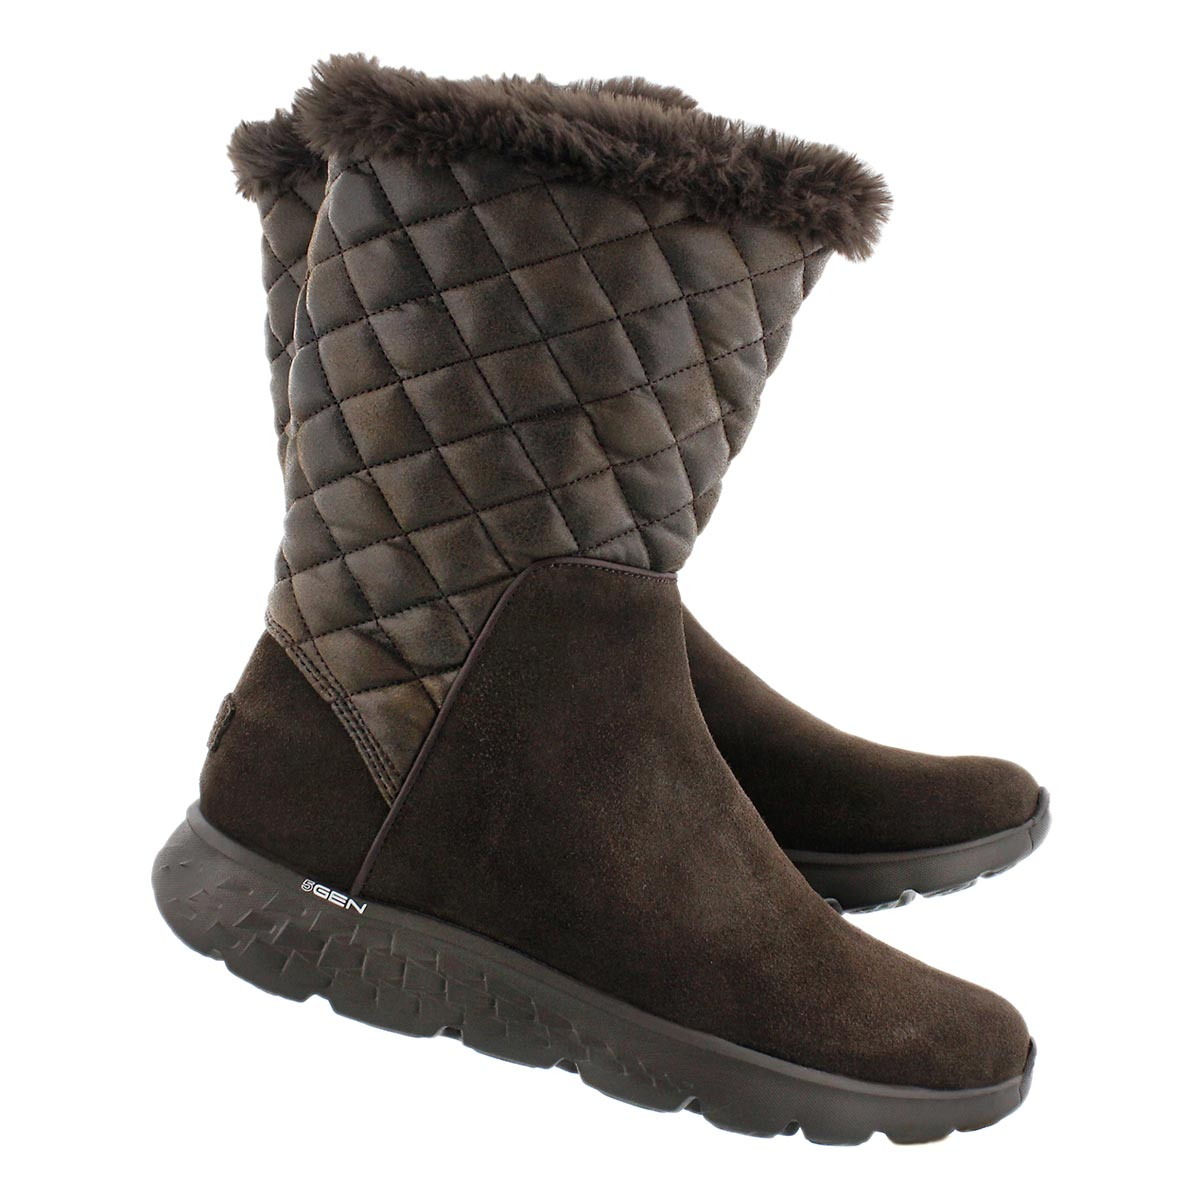 Lds 400 Snugly choc quilted mid boot